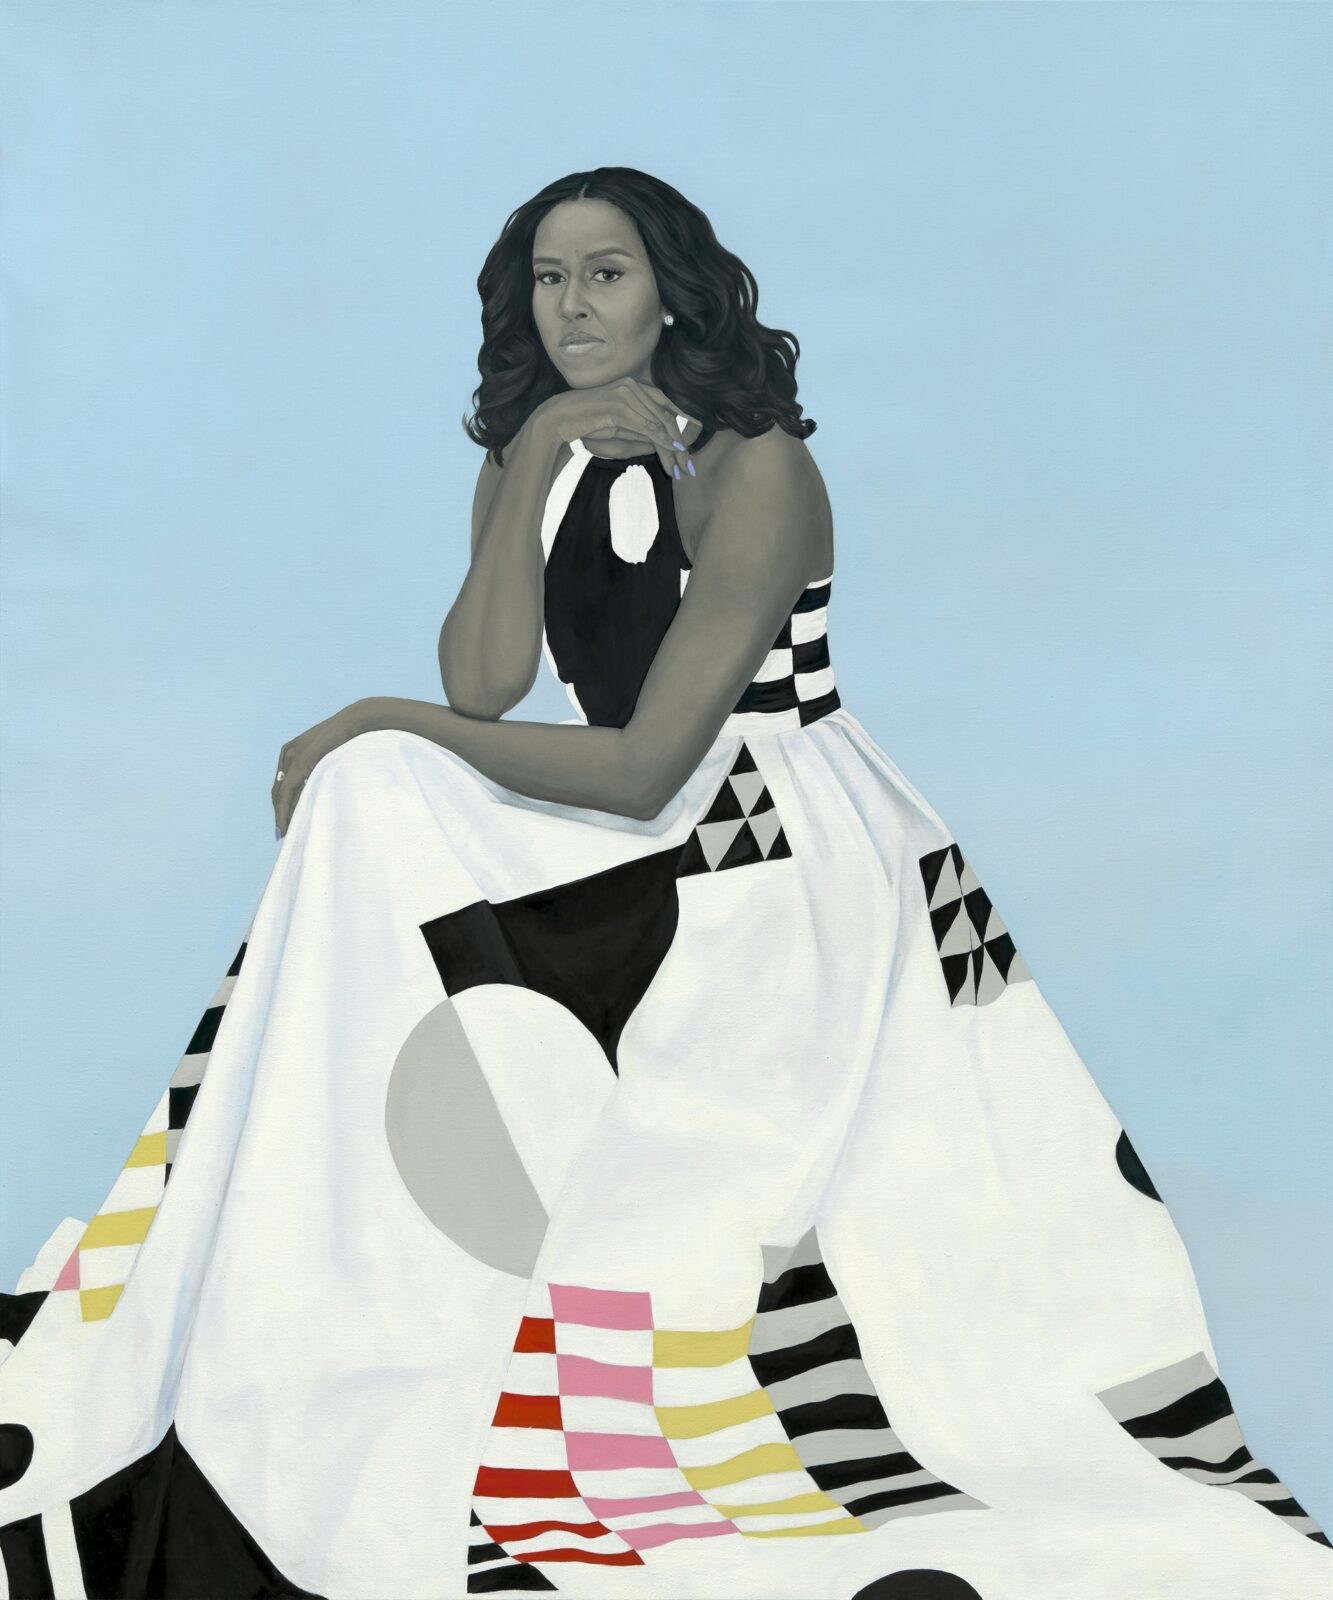 Official Portraits of Barack and Michelle Obama by Kehinde Wiley and Amy Sherald